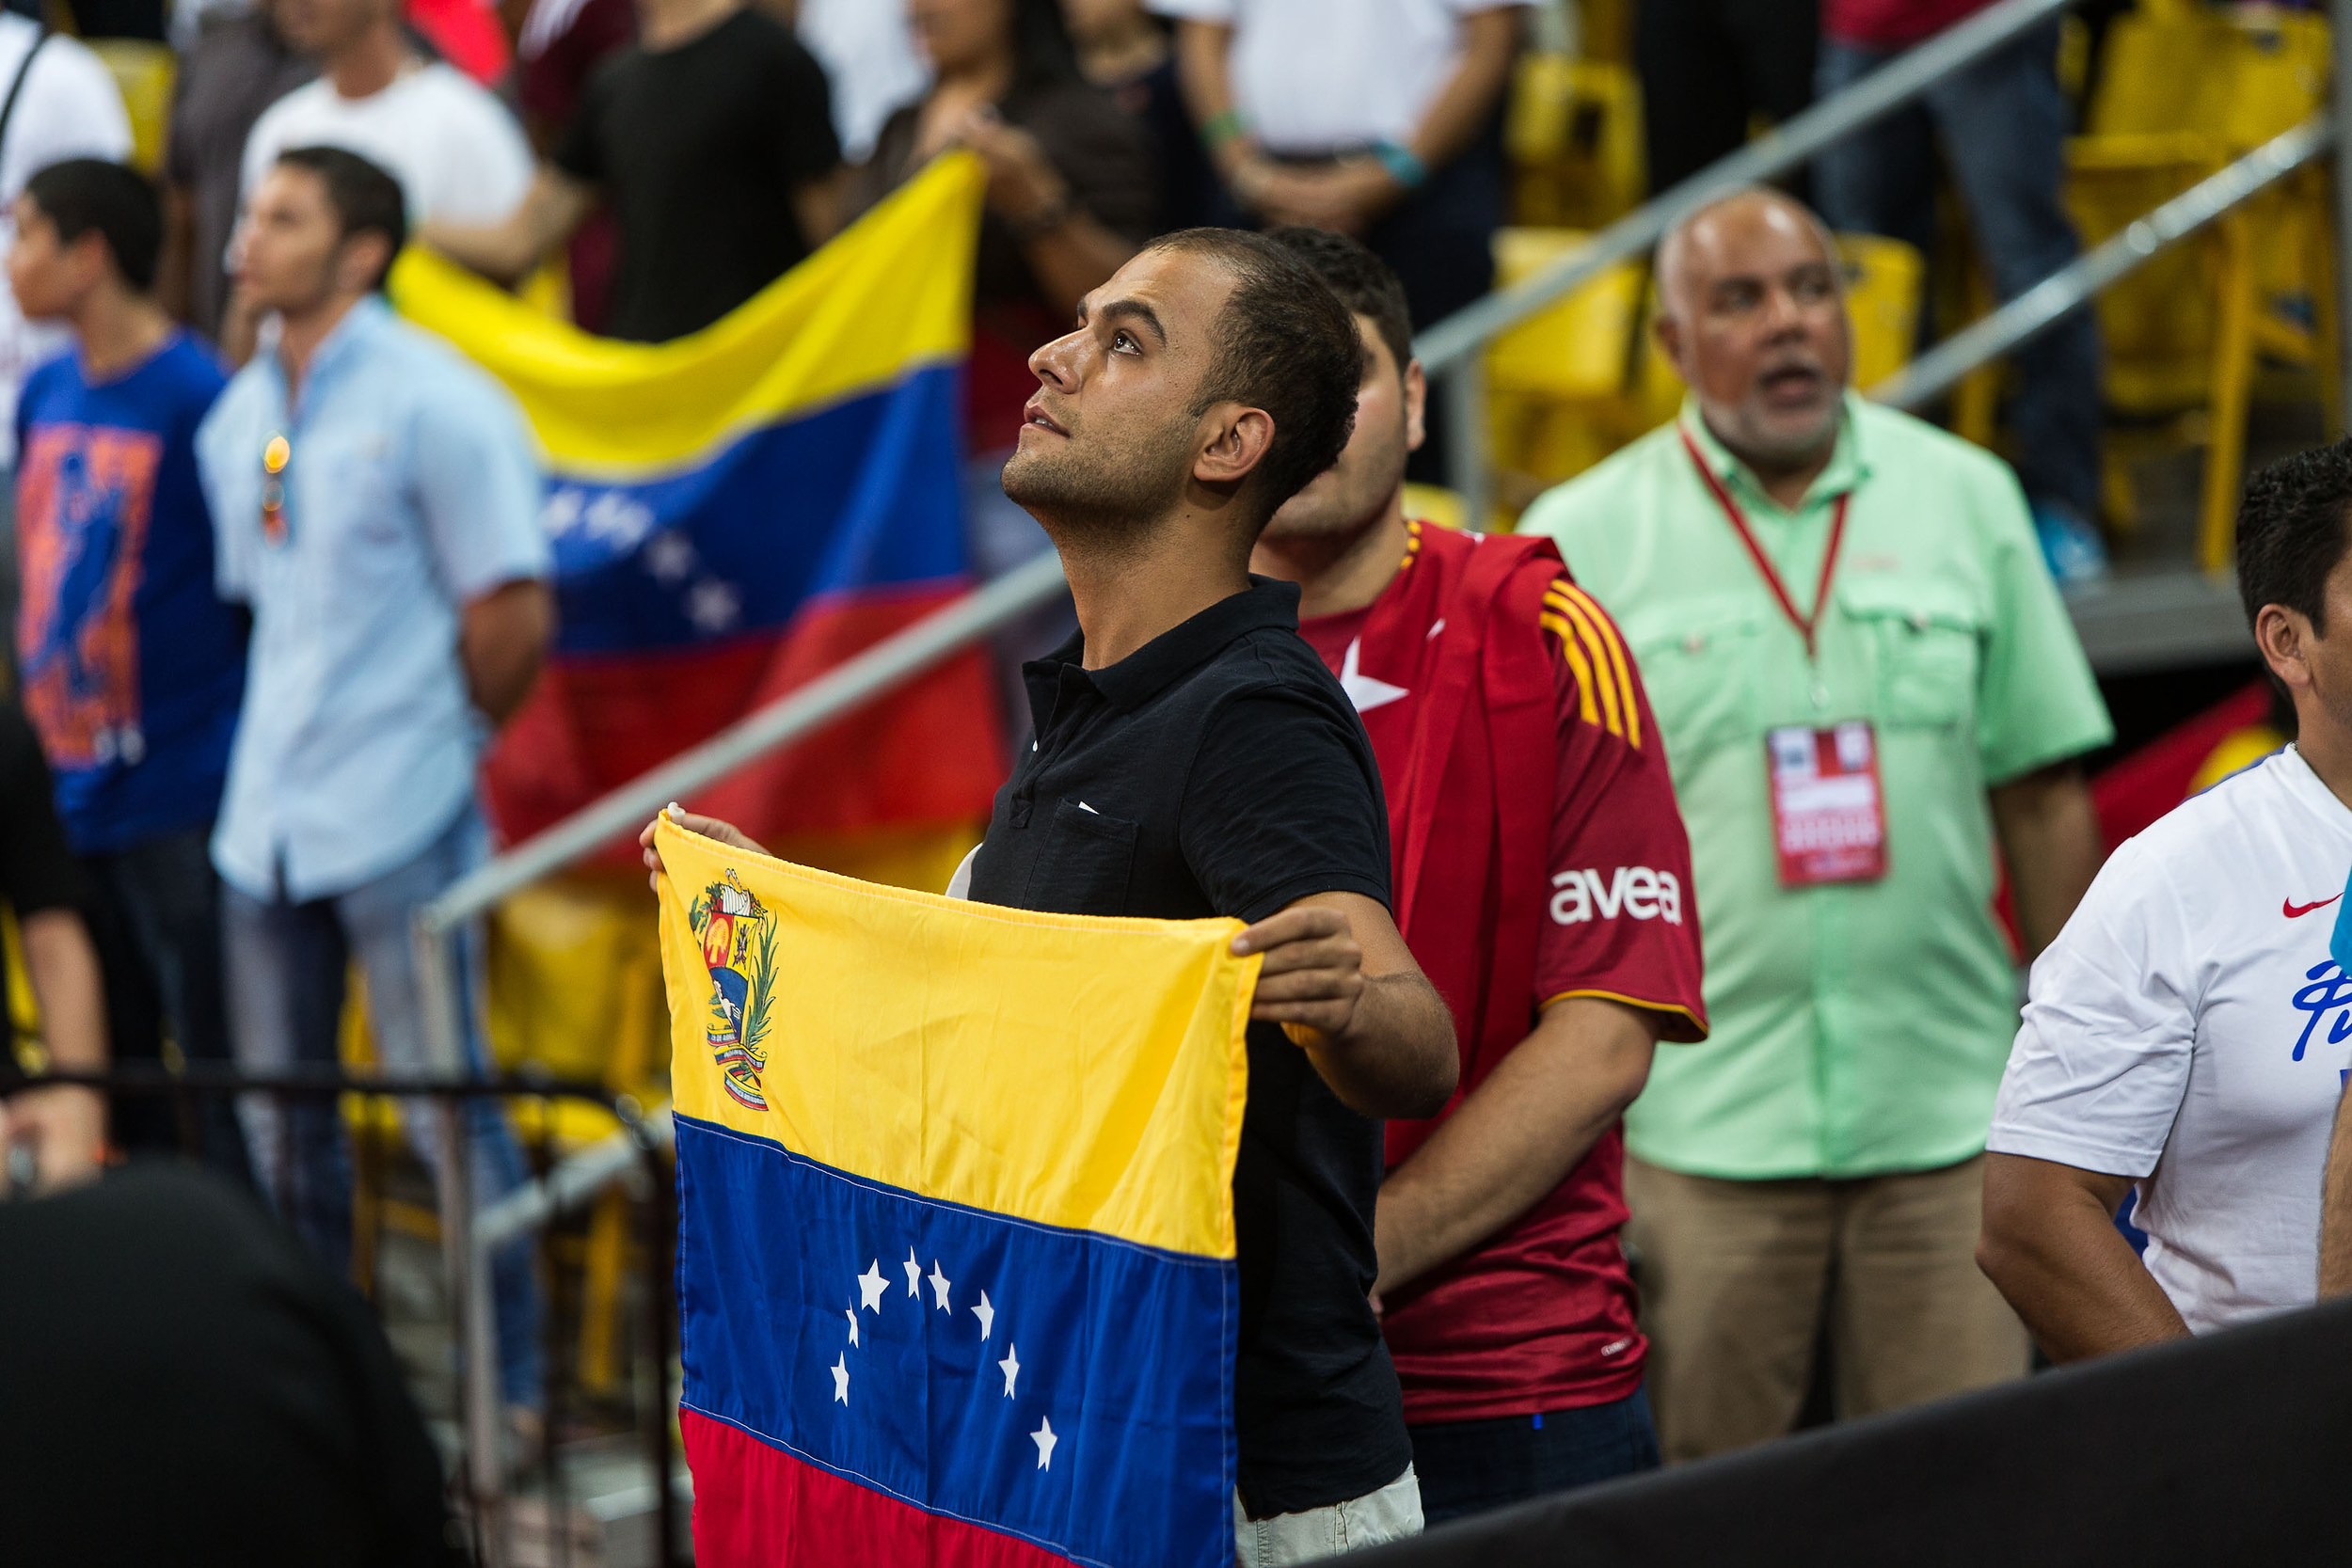 Venezuela fans sang their national anthem before the game started on Saturday night.